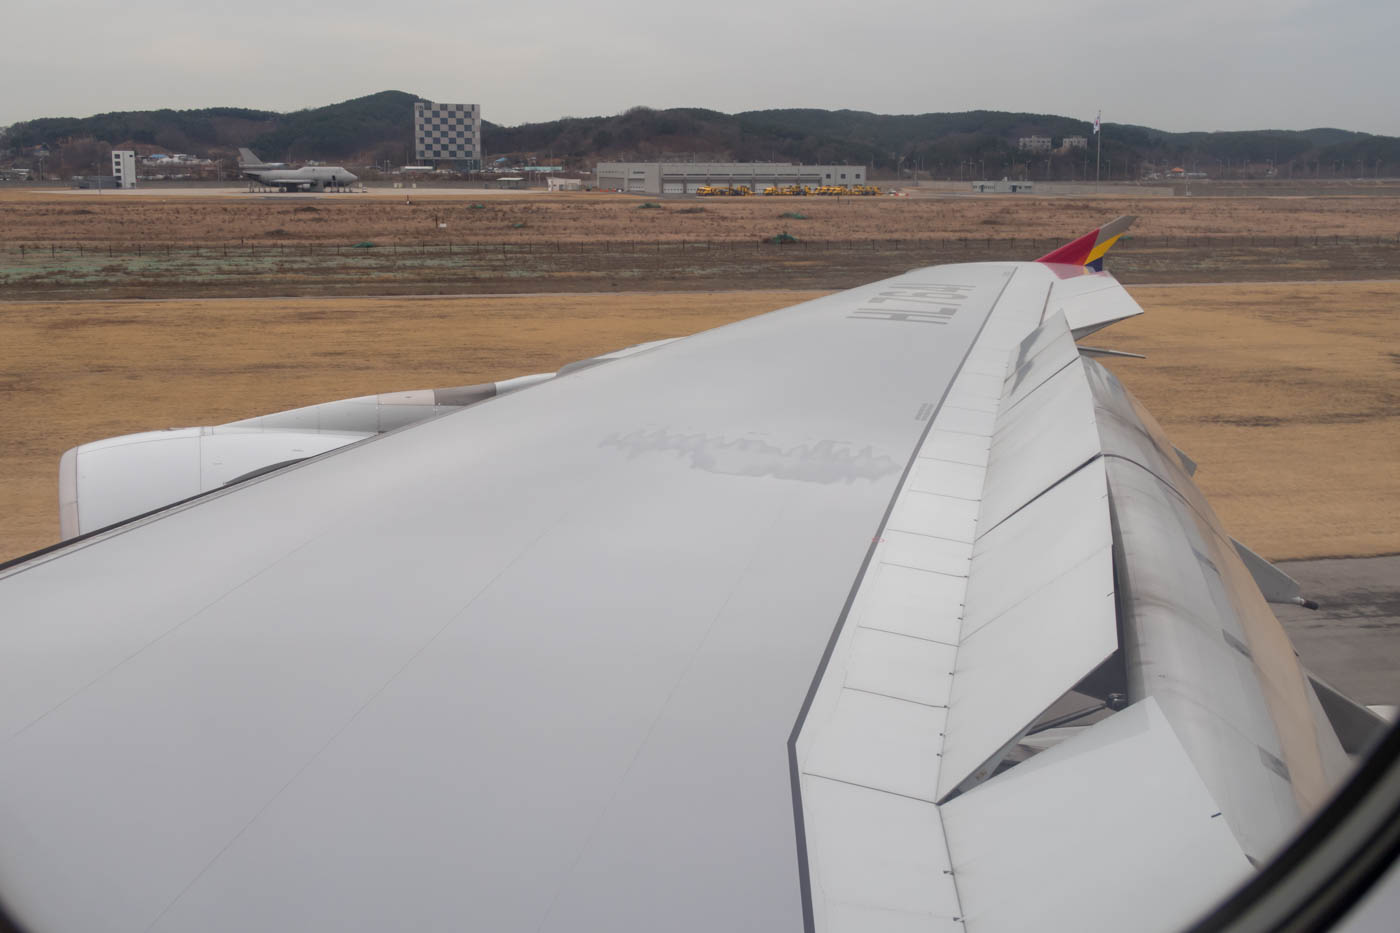 Landing at Seoul Incheon Airport